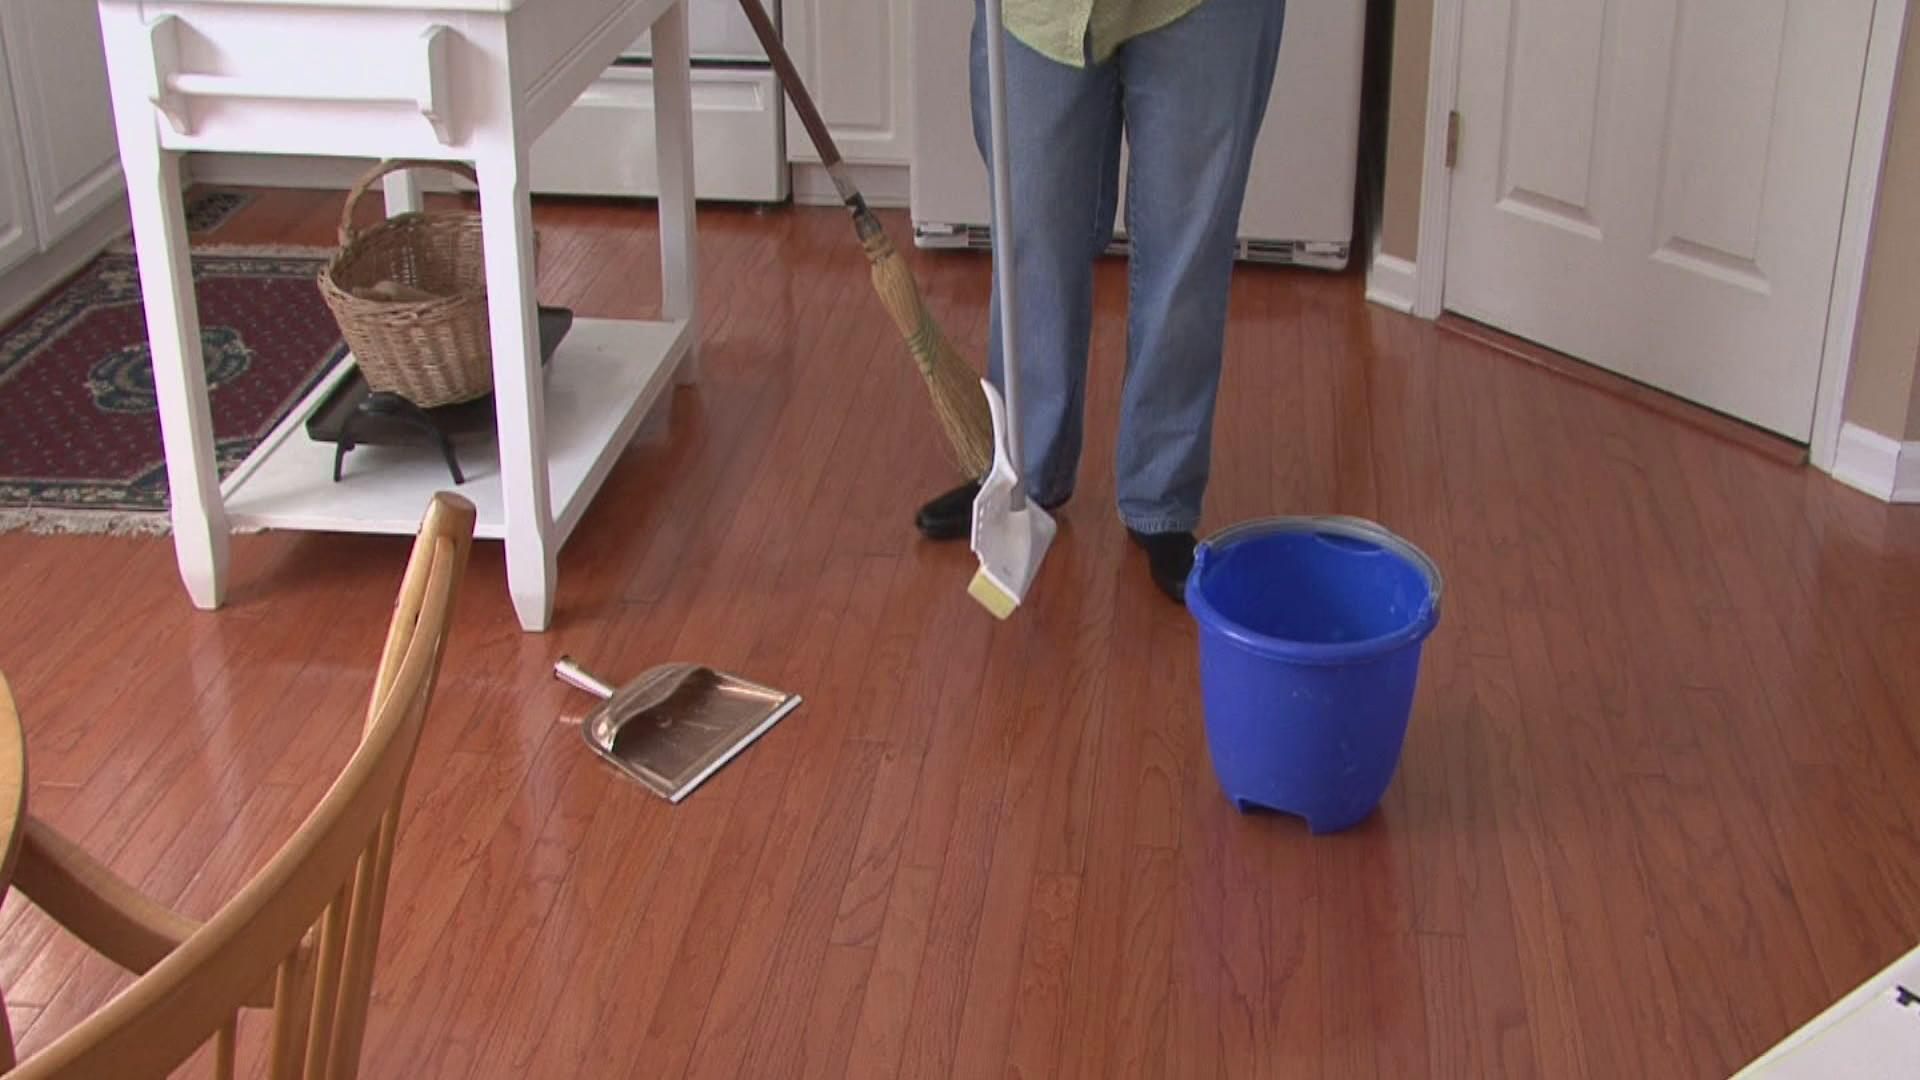 Best tips and mop for wood floors homesfeed mop for wood floors brown wooden floors blue bucket white table dailygadgetfo Choice Image